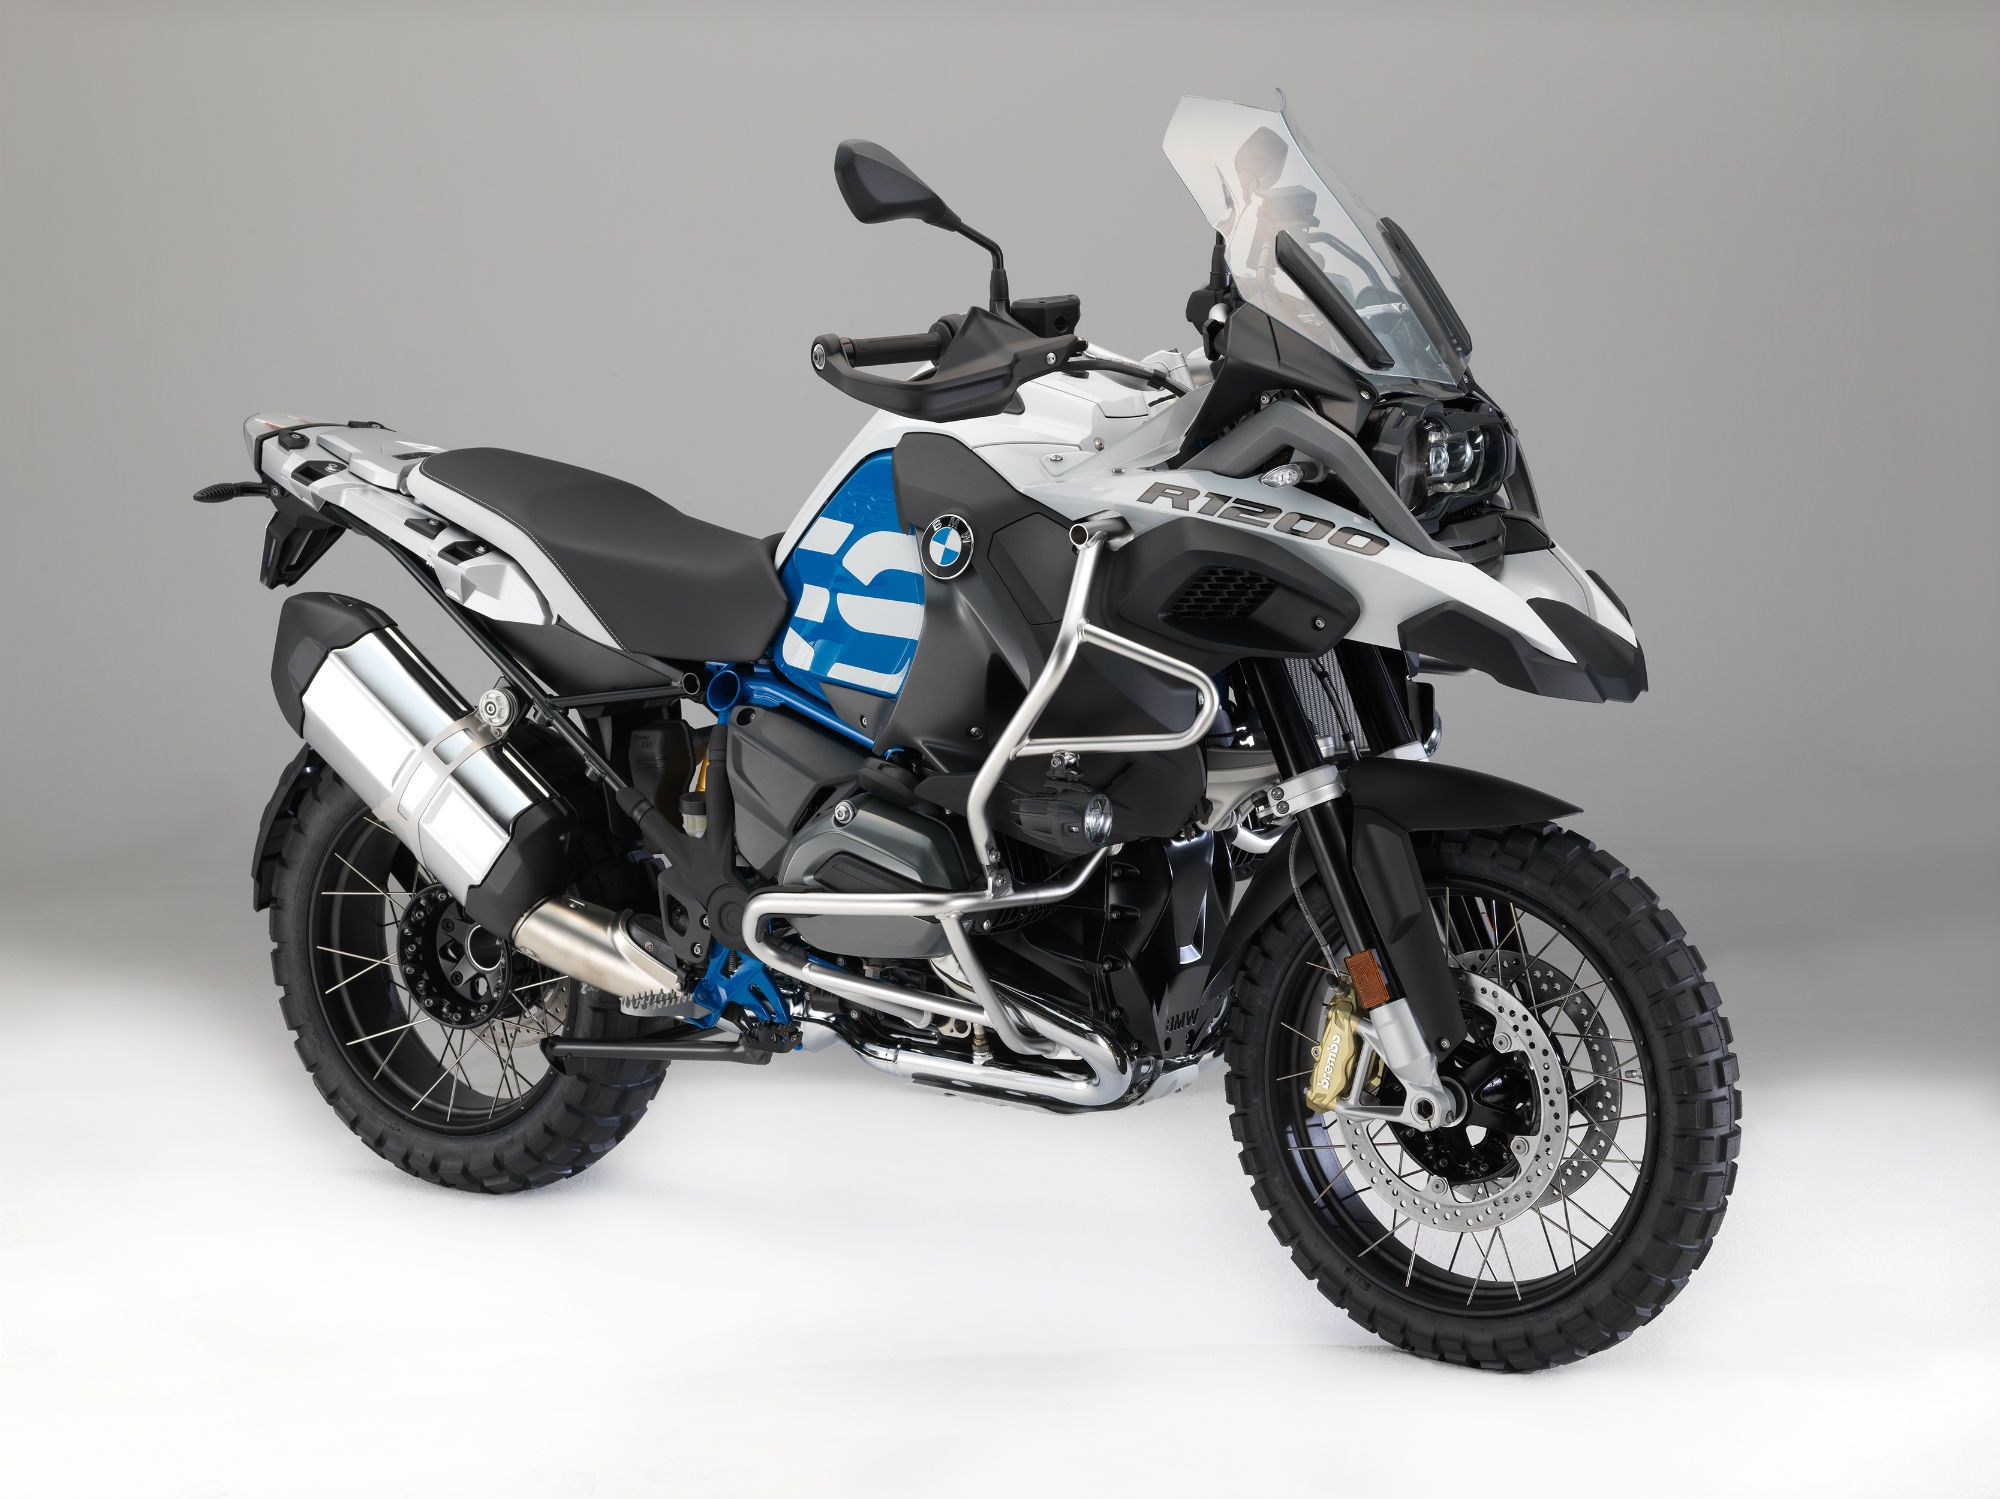 Including New Colours And Emergency Call Option For R1200gs And Gs Adventure Touring Motorcycles Dual Sport Motorcycle Bmw